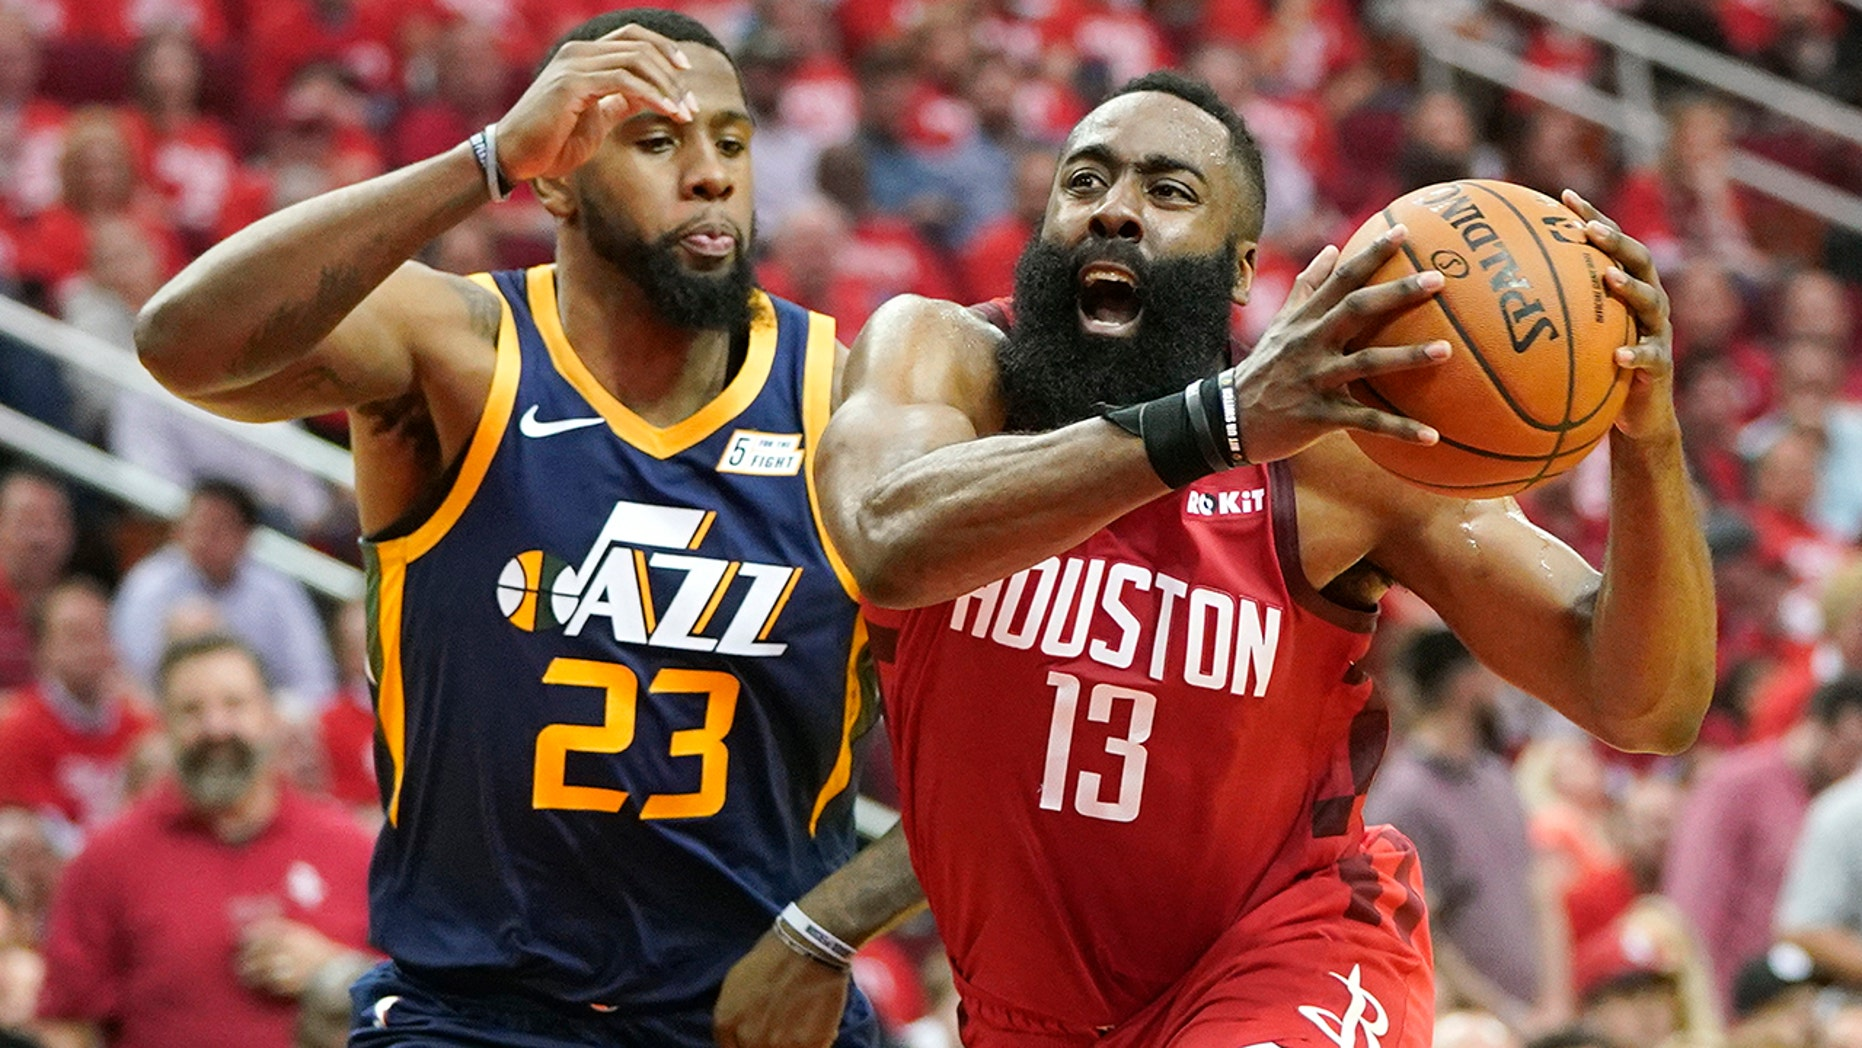 Westlake Legal Group NBA-James-Harden2 Harden's triple-double helps Rockets rout Jazz again fox-news/sports/nba/utah-jazz fox-news/sports/nba/houston-rockets fox-news/sports/nba-playoffs fox-news/sports/nba fnc/sports fnc Associated Press article 43536378-9ca9-538a-b5ff-8aee048ce6ff